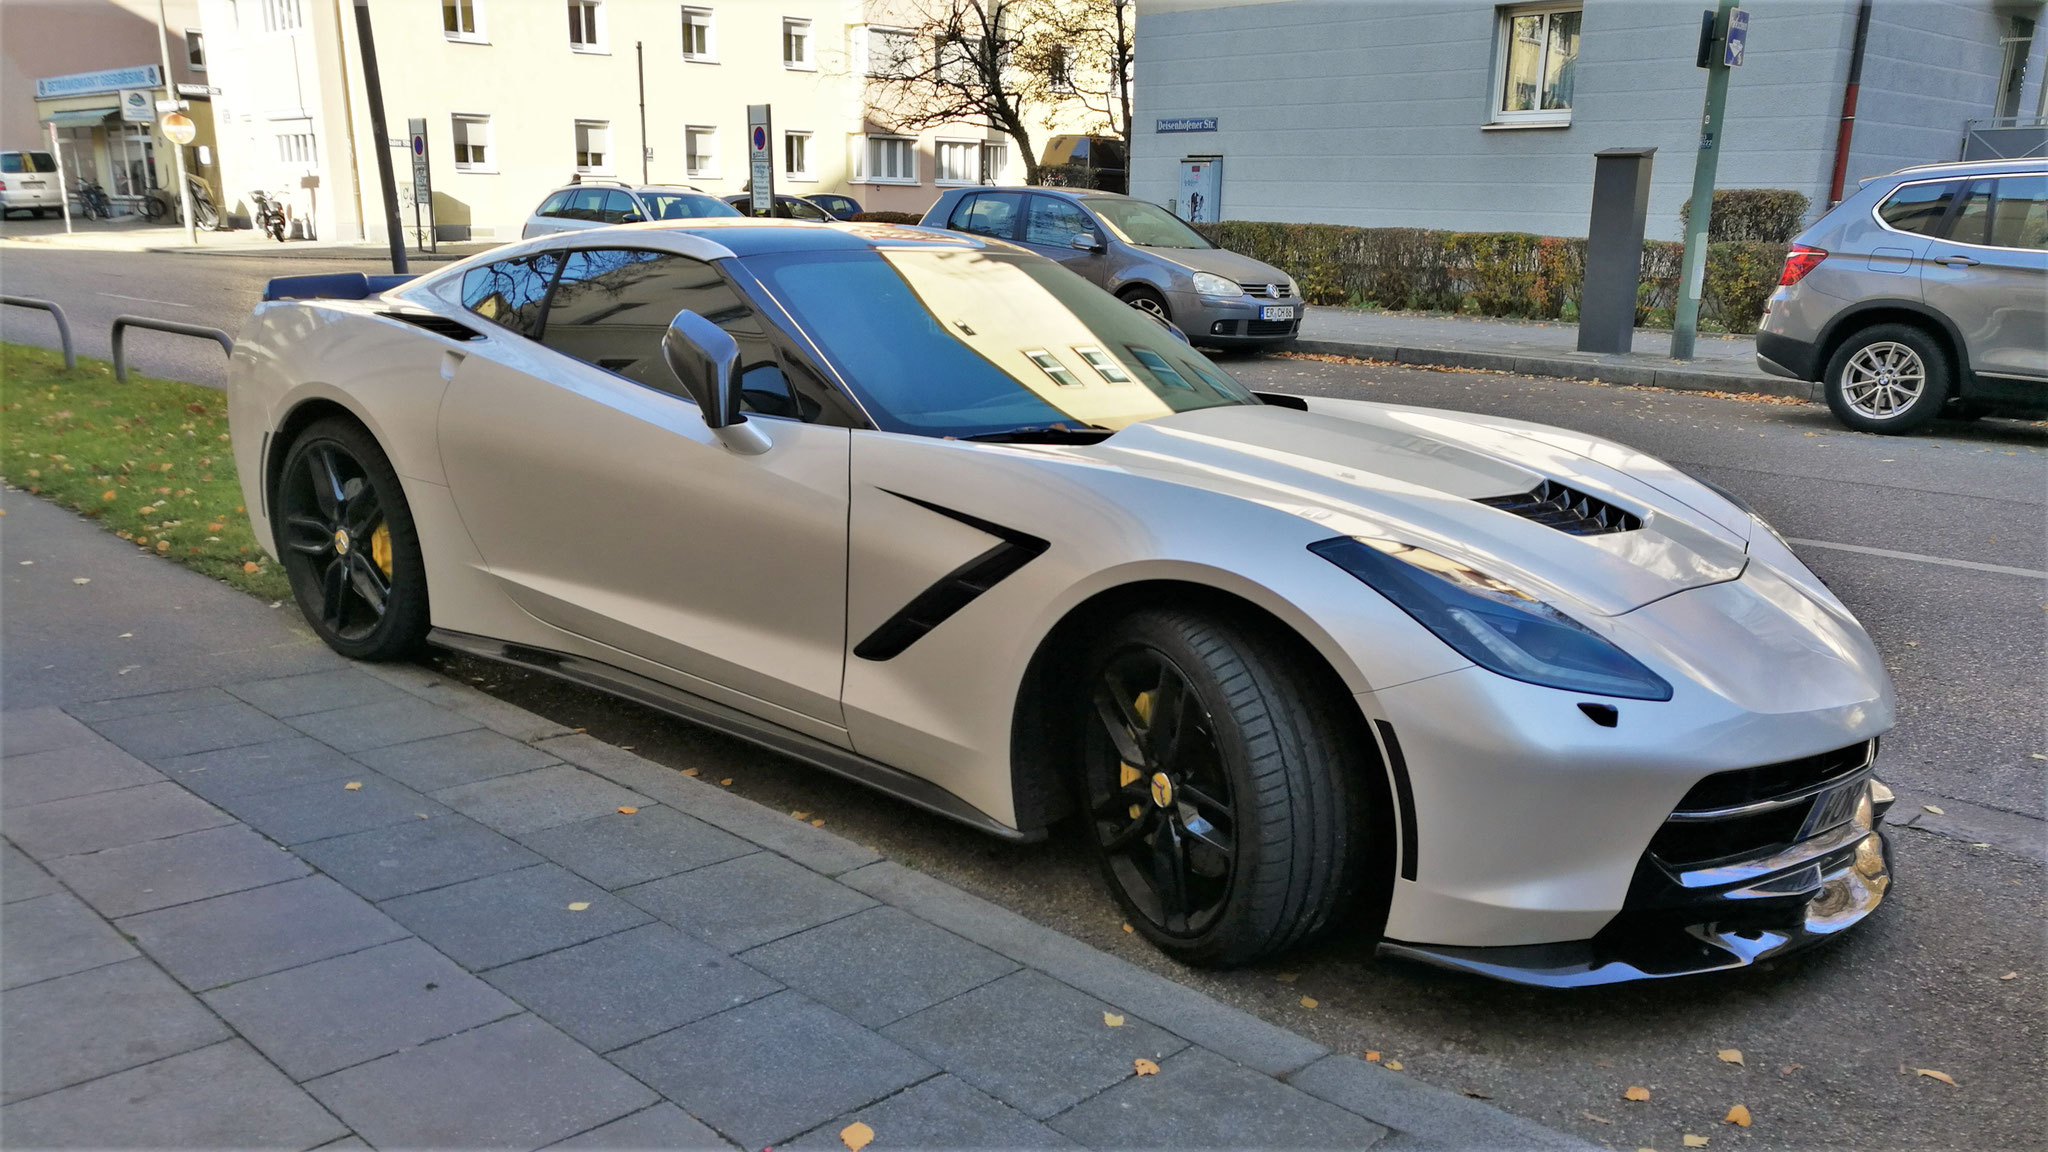 Chevrolet Corvette C7 Stingray - WOR-MK-6